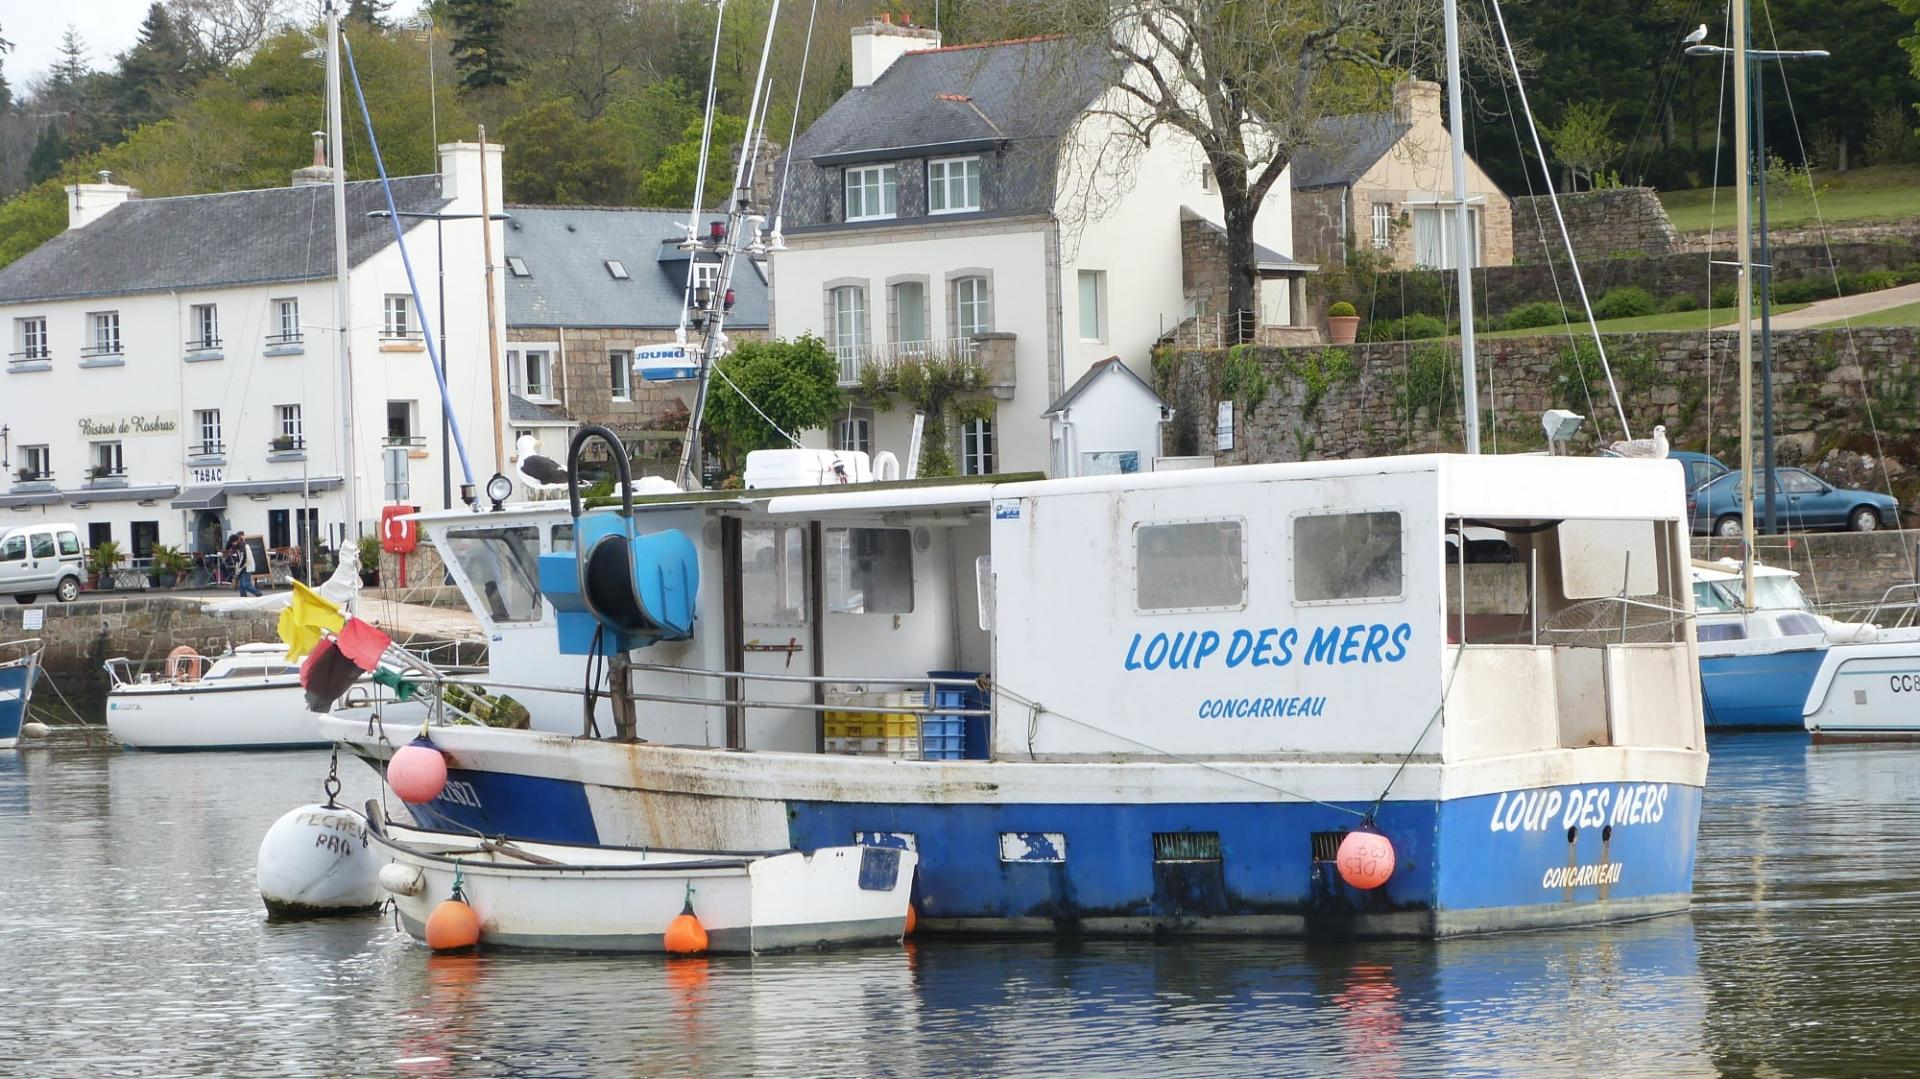 Loup des mers cc fabrice roperch